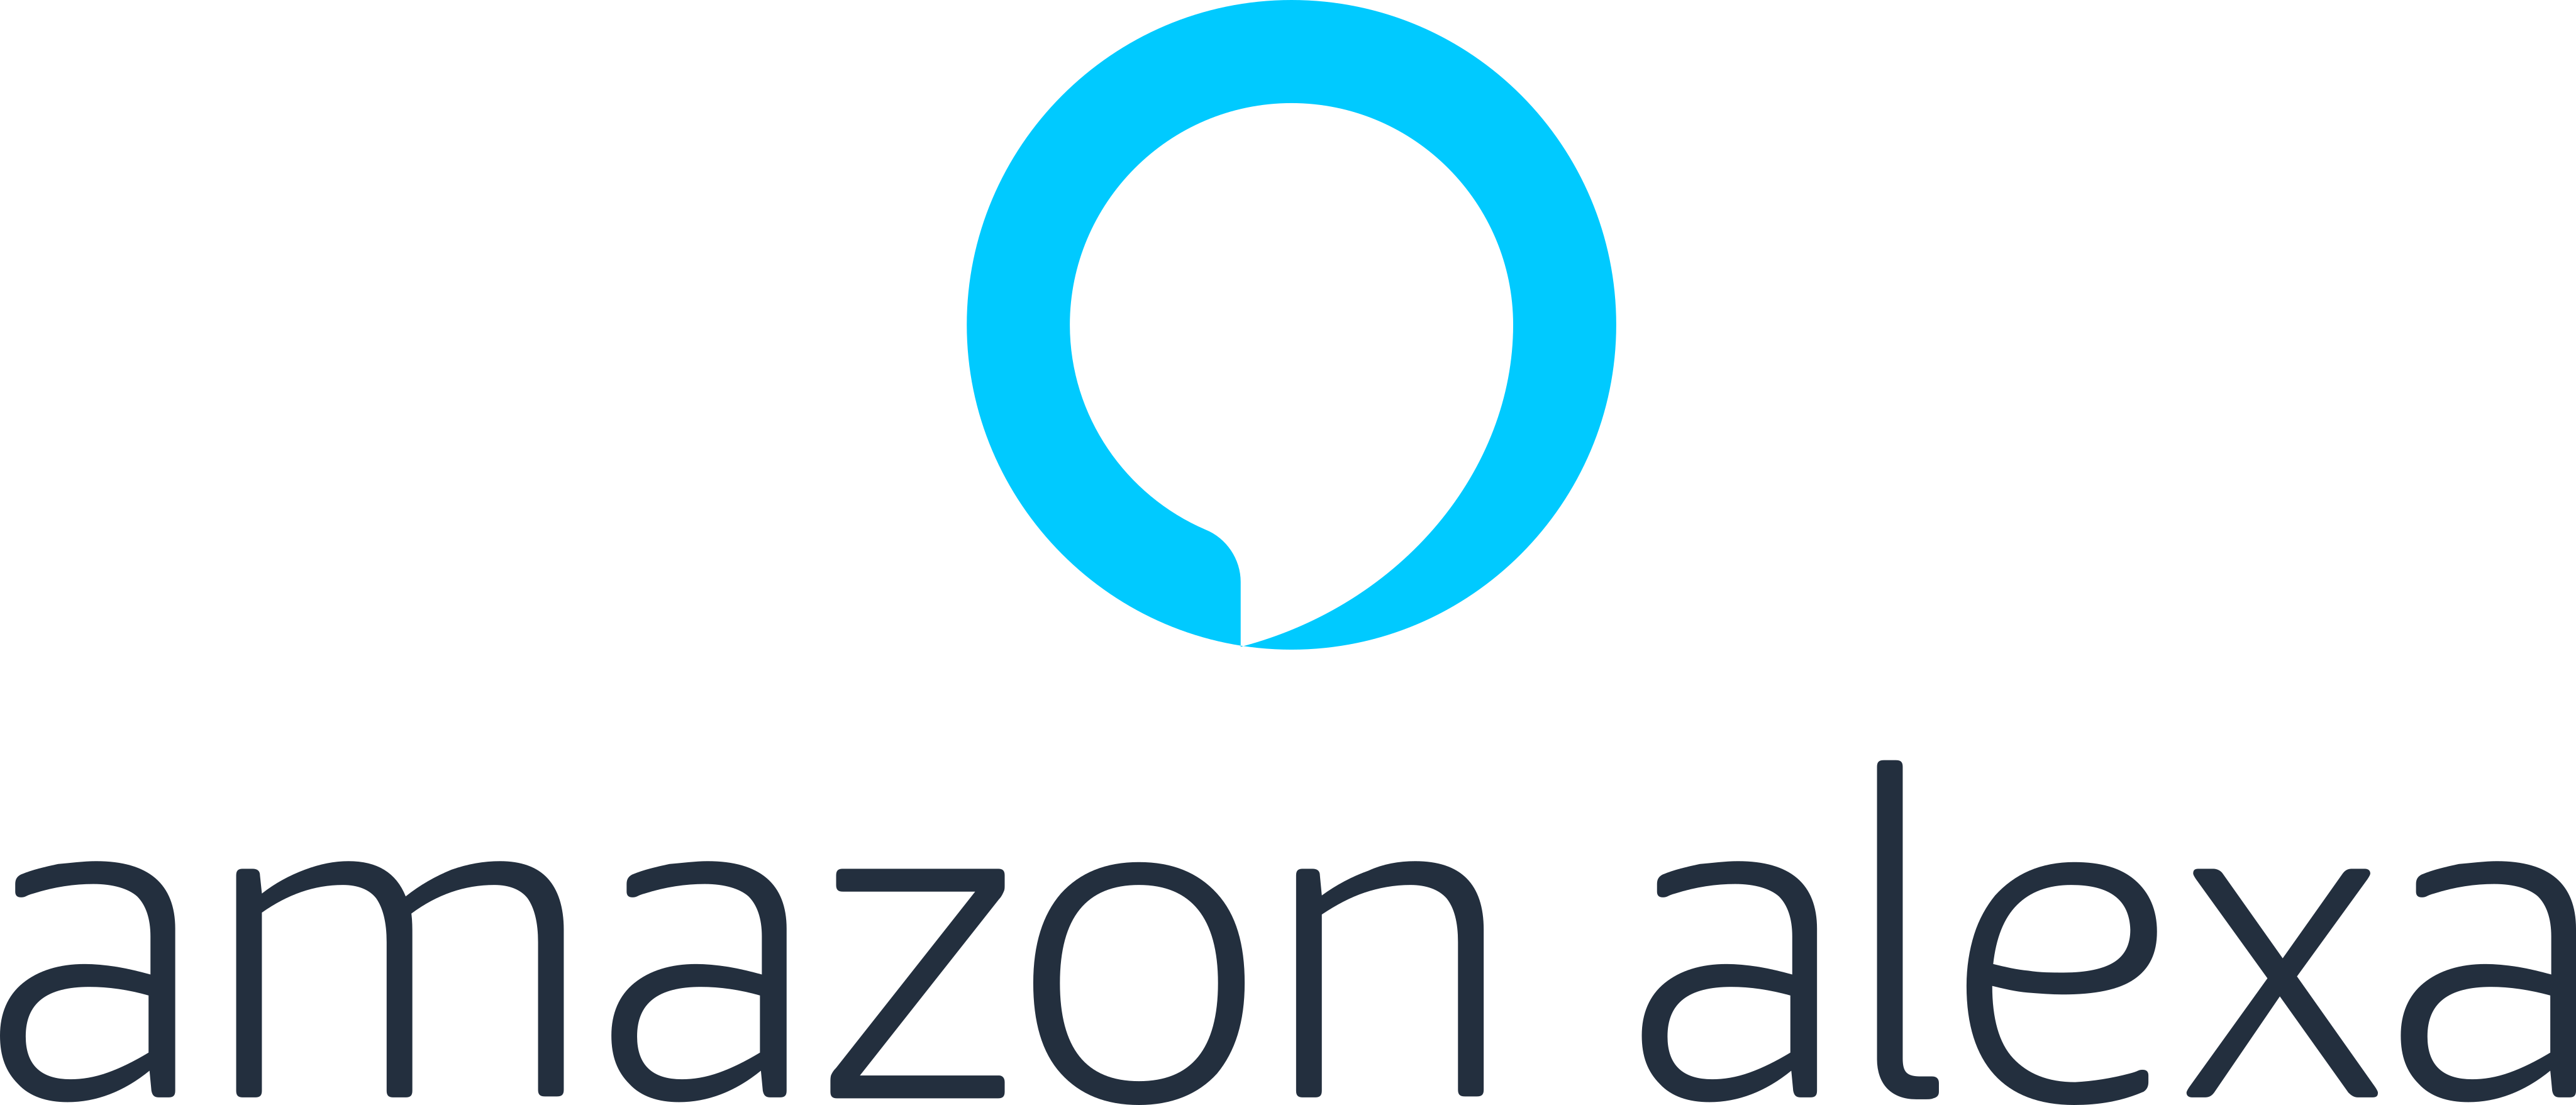 amazon alexa logo 1 - Amazon Alexa Logo